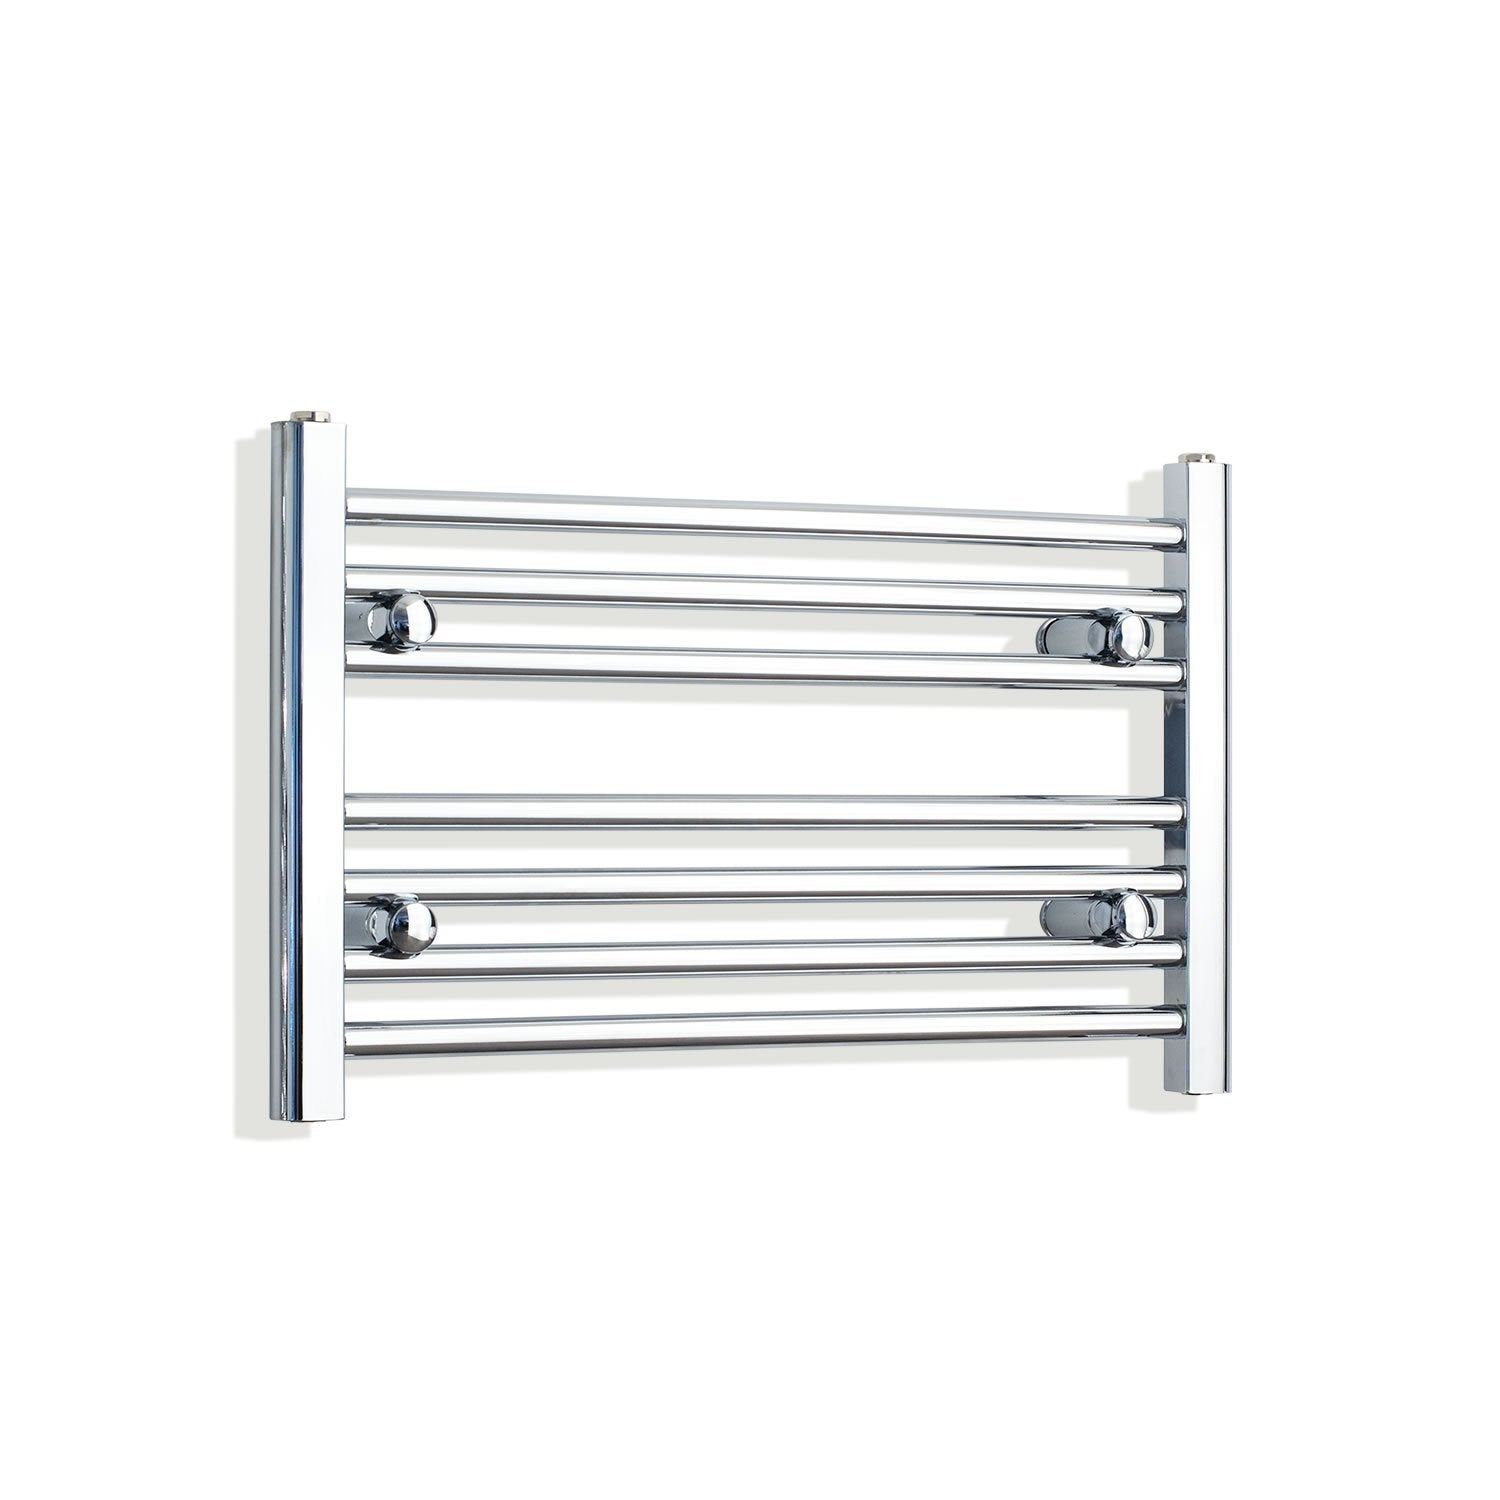 650mm Wide 400mm High Flat Chrome Heated Towel Rail Radiator HTR,Towel Rail Only